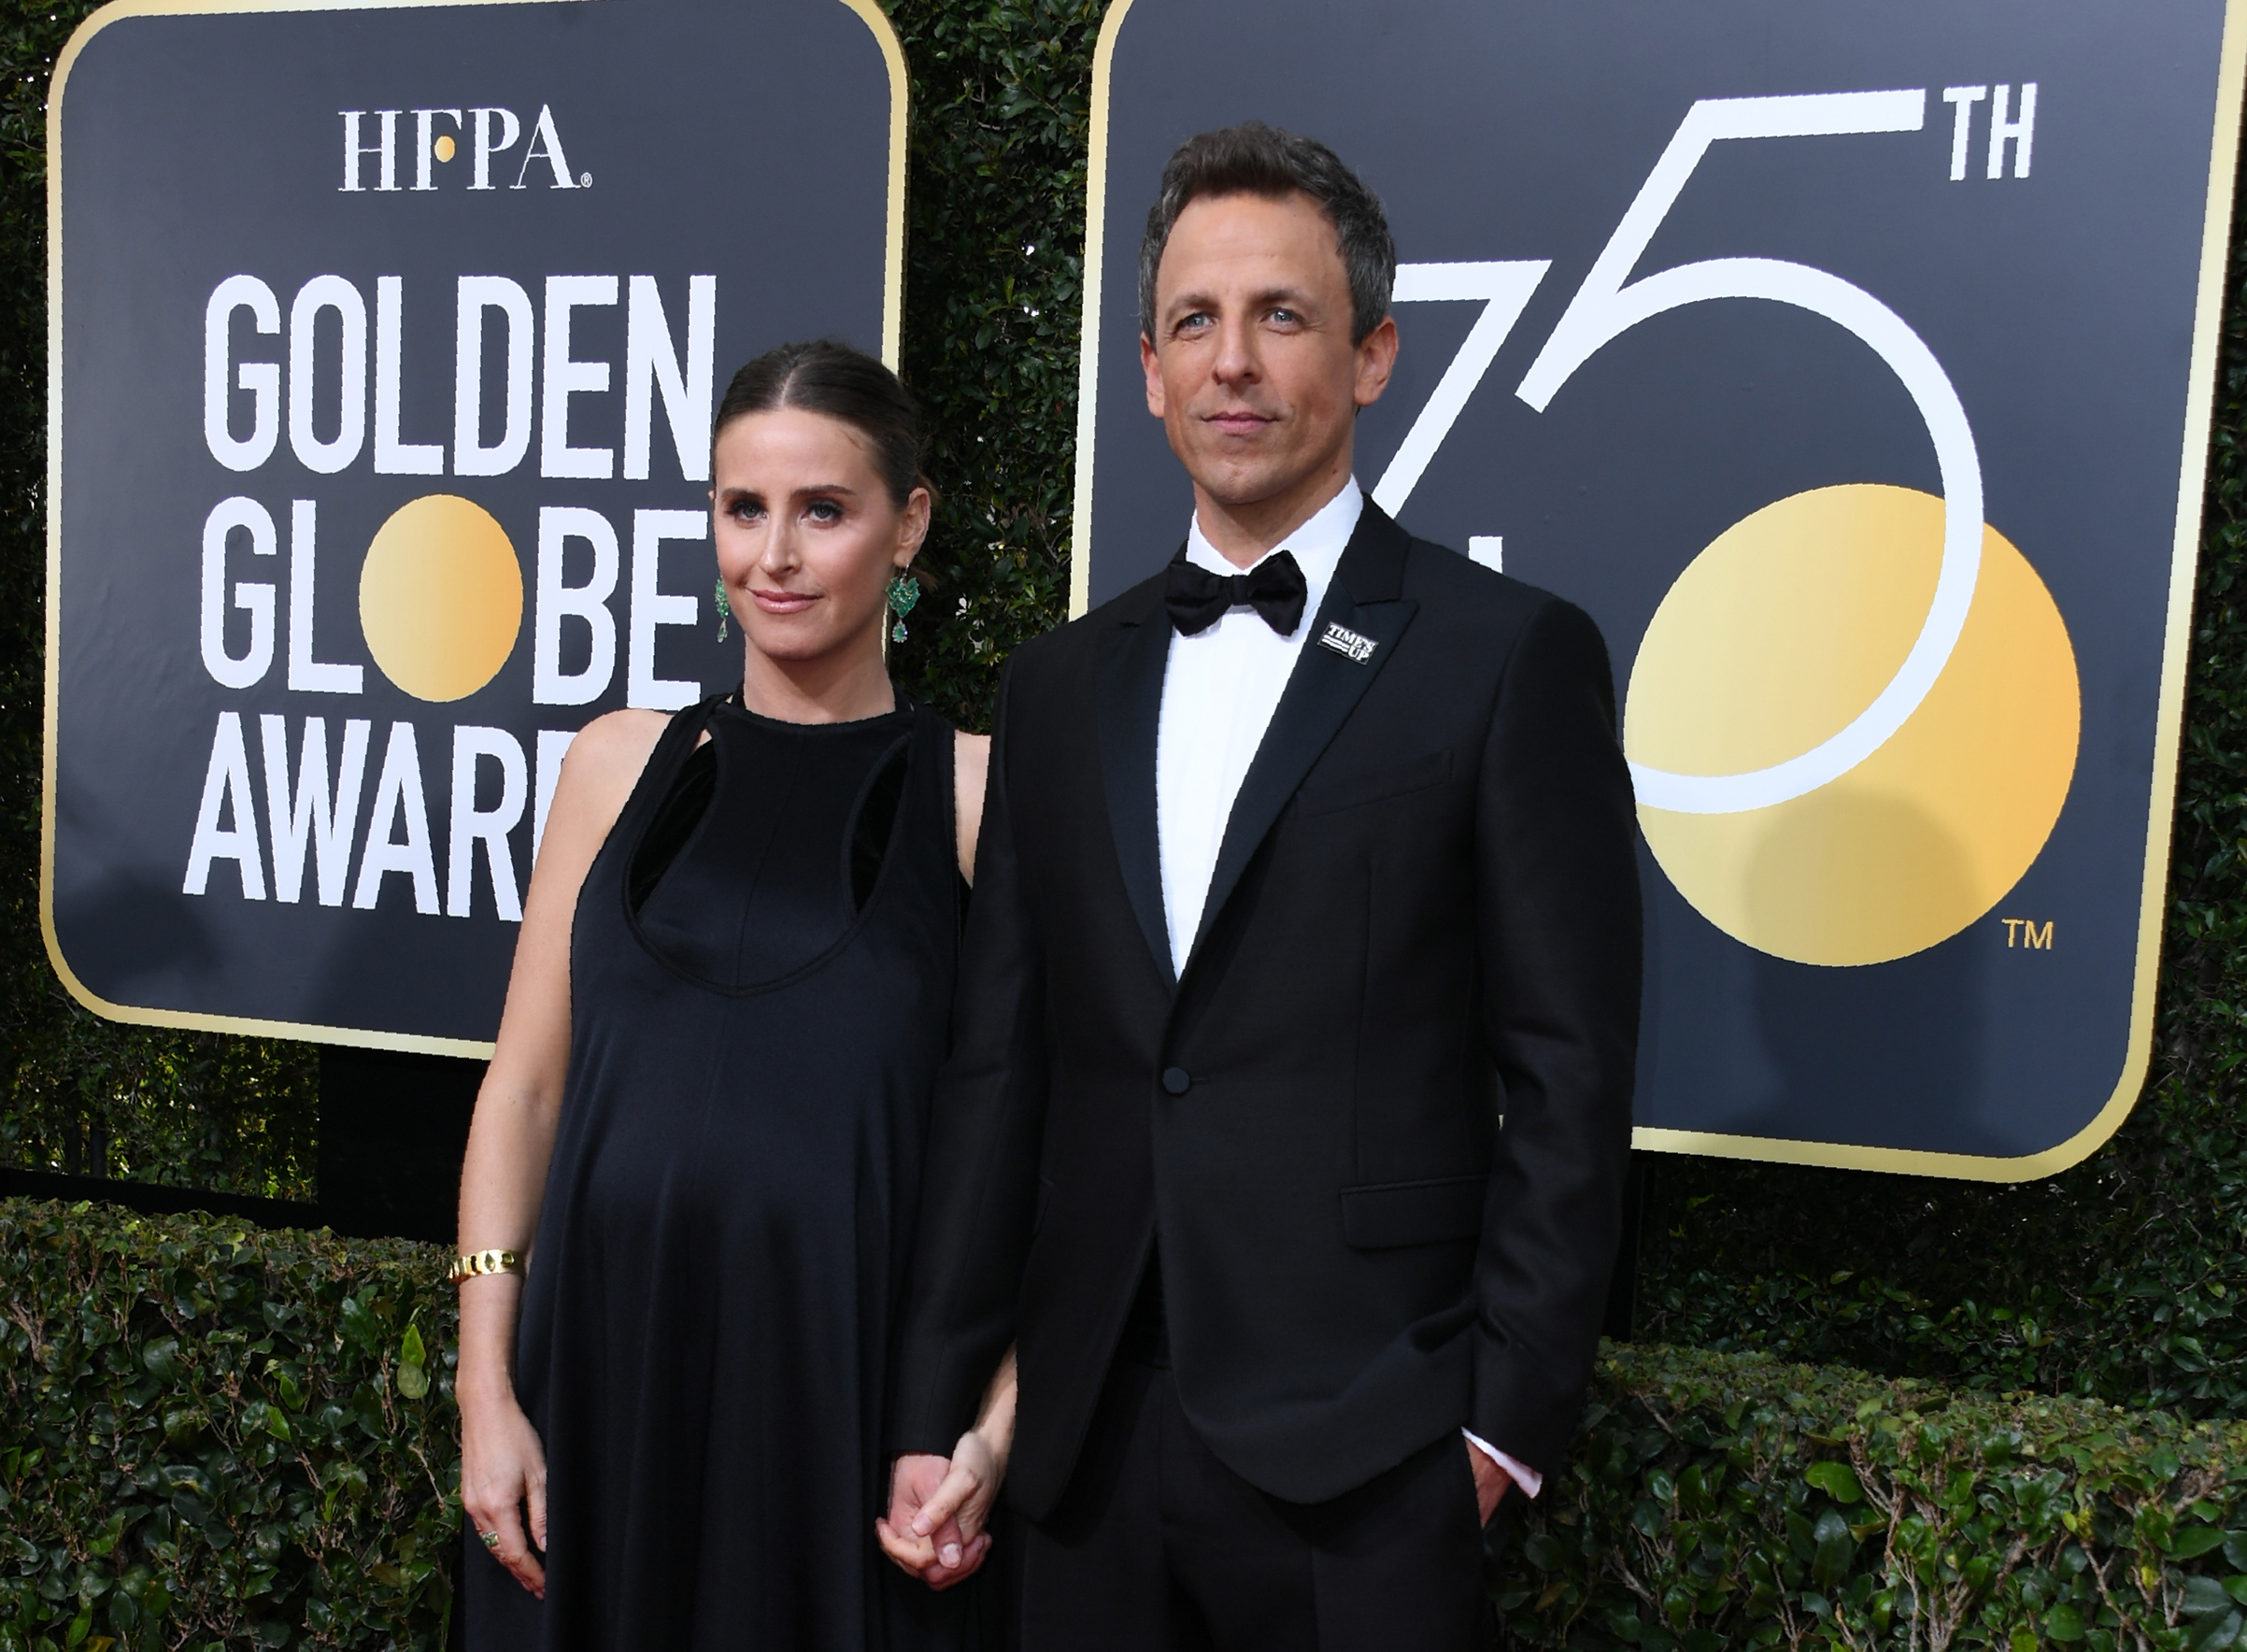 Seth Meyers and Alexi Ashe arrive for the 75th Golden Globe Awards on January 7, 2018, in Beverly Hills, California.